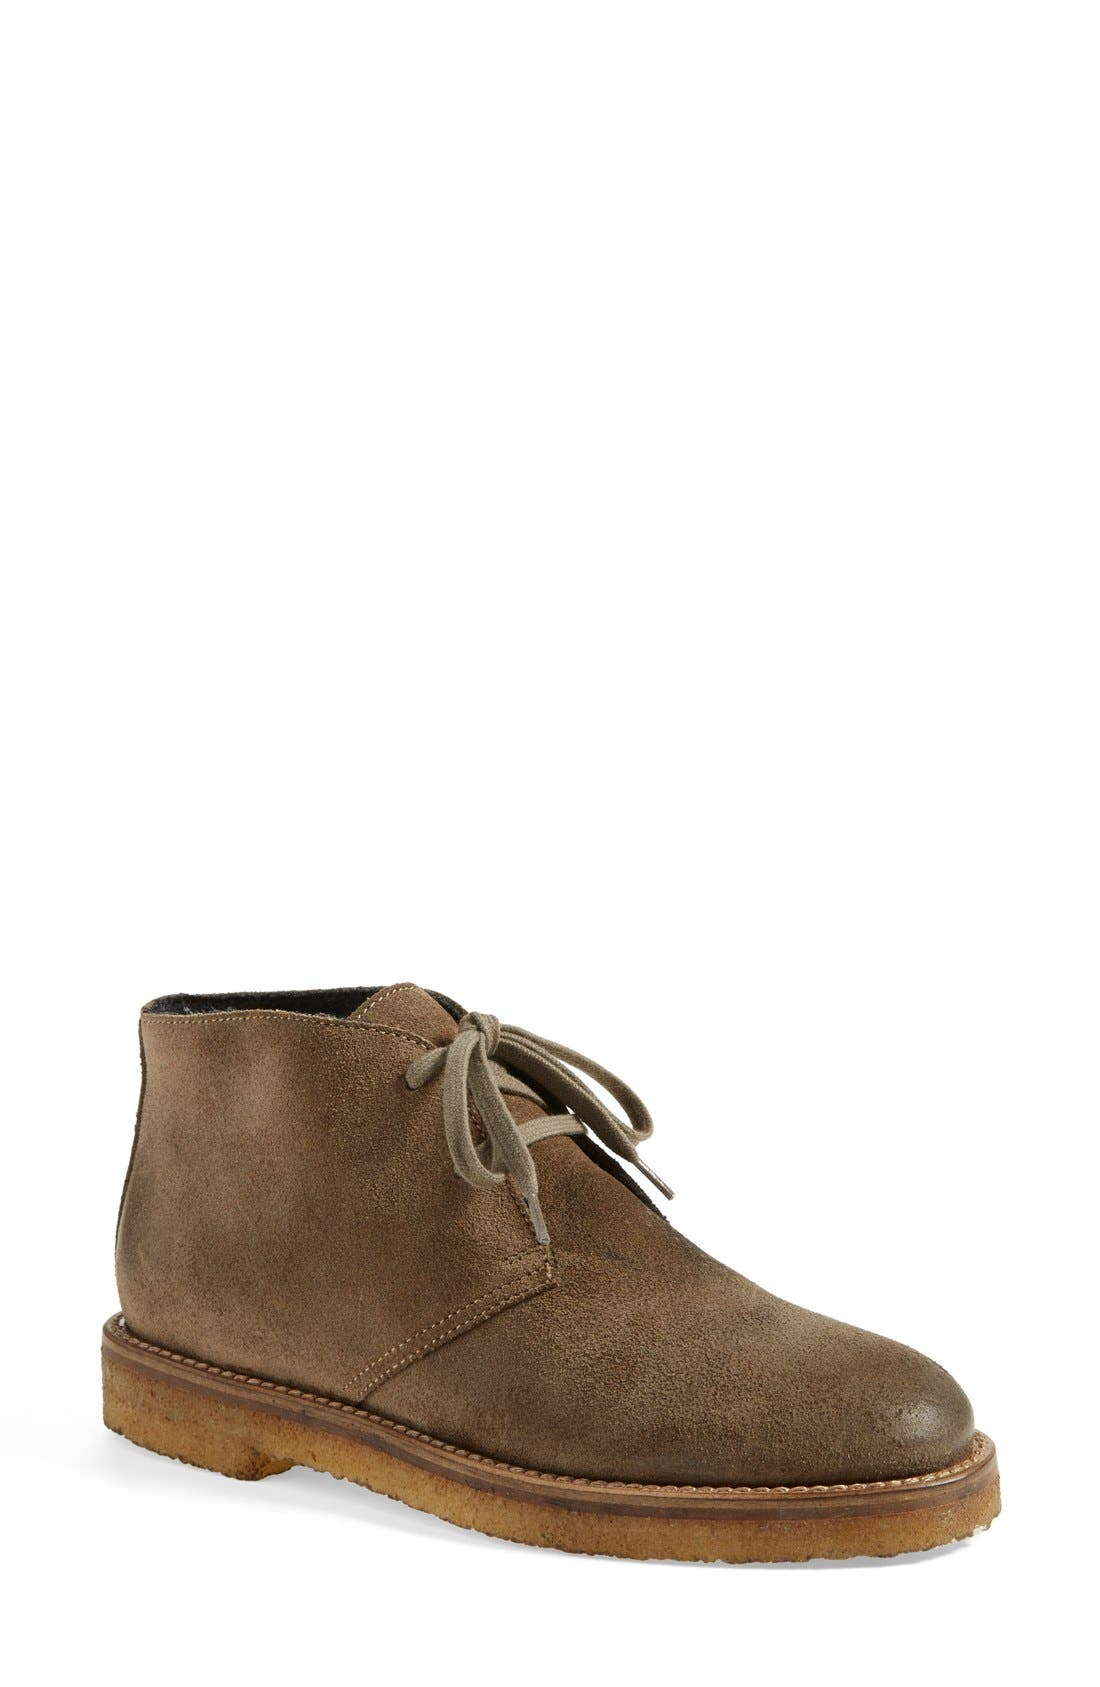 Alternate Image 1 Selected - Vince 'Clay' Chukka Boot (Women)